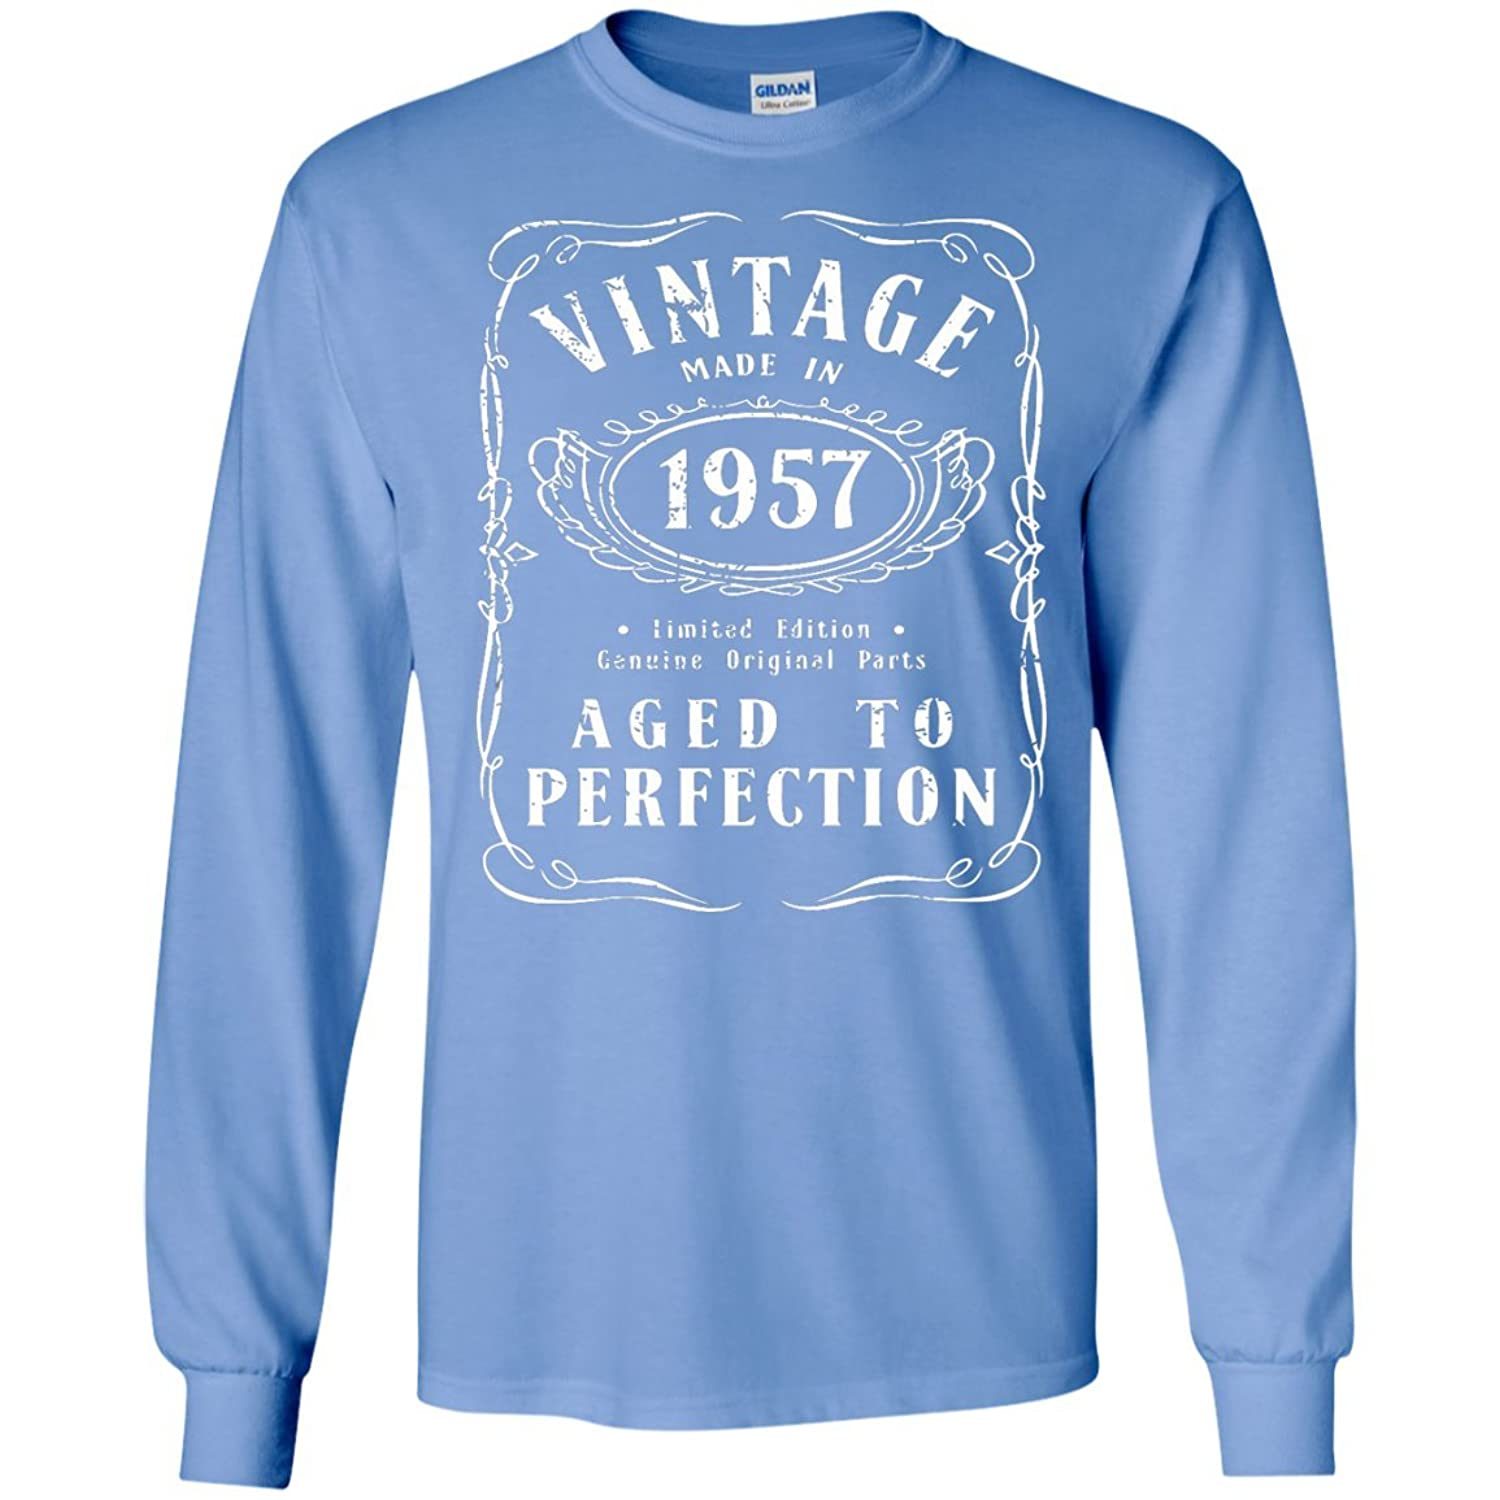 Vintage 1957 aged to perfection Men size Long Sleeves